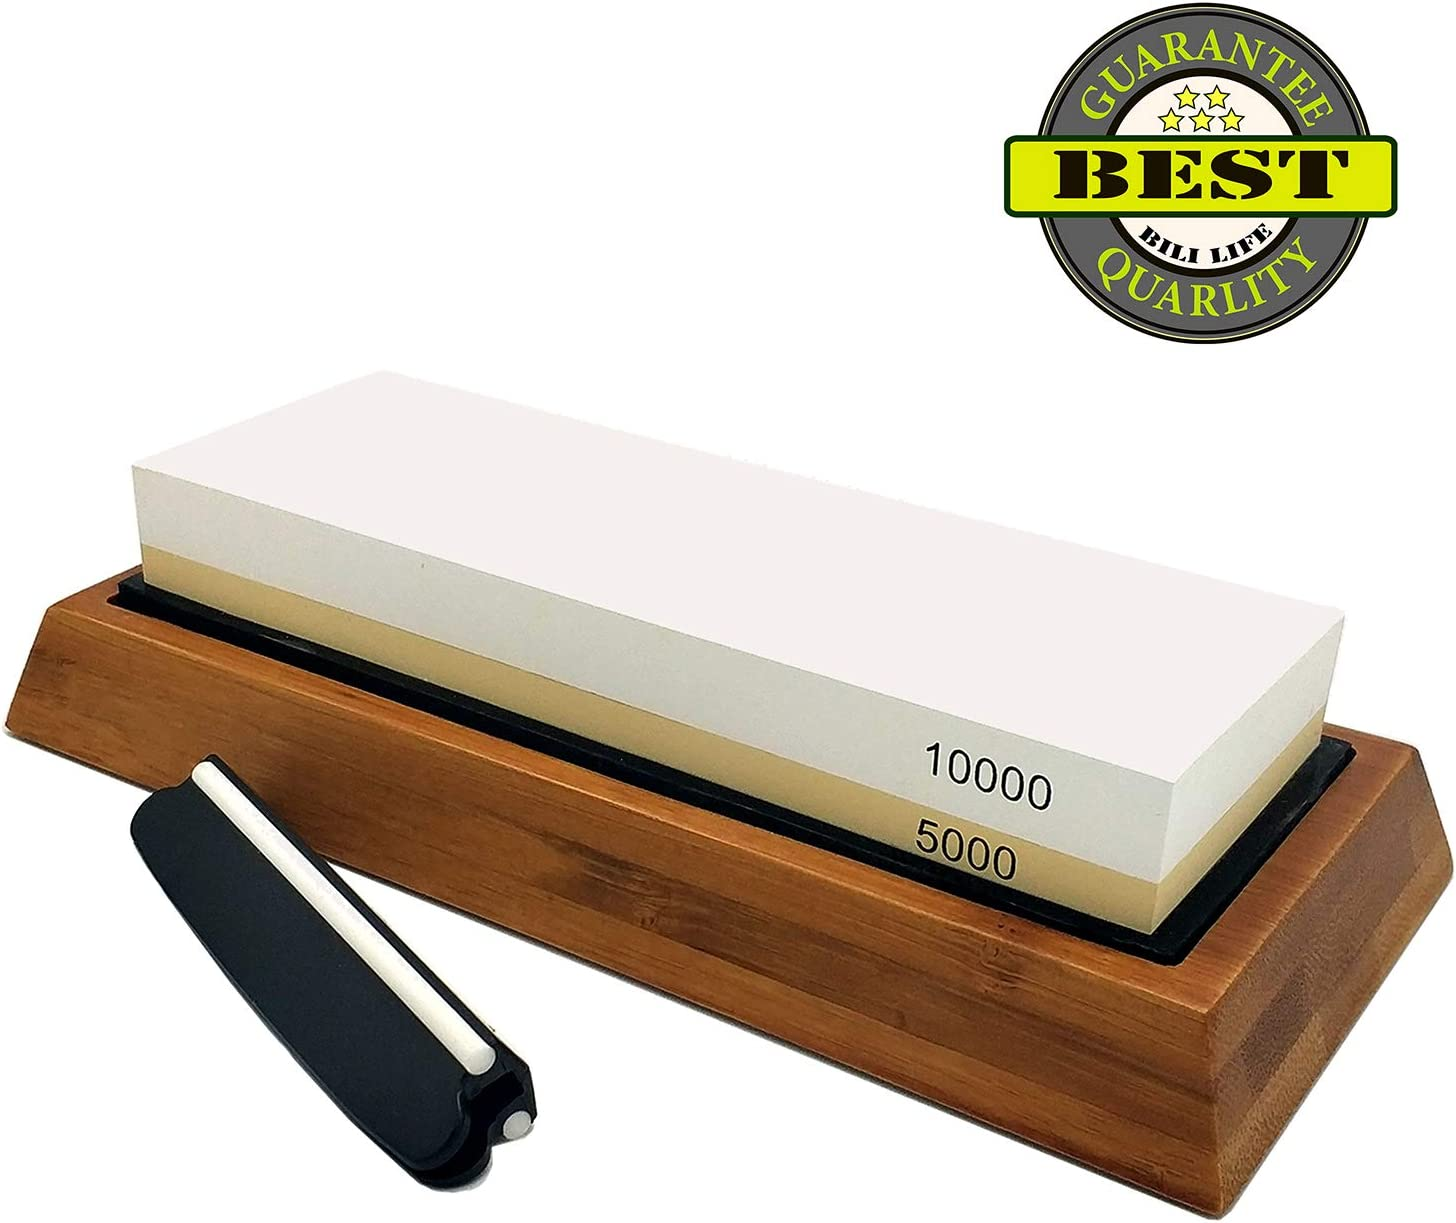 Waterstone Rubber Stone Holder Included Whetstone 5000//10000 Grit Sharpening Stone VECU 2 Side Polishing Kit Professional Waterstone Sharpener for Kitchen Cutlery and Outdoor Blades Polishing Tools